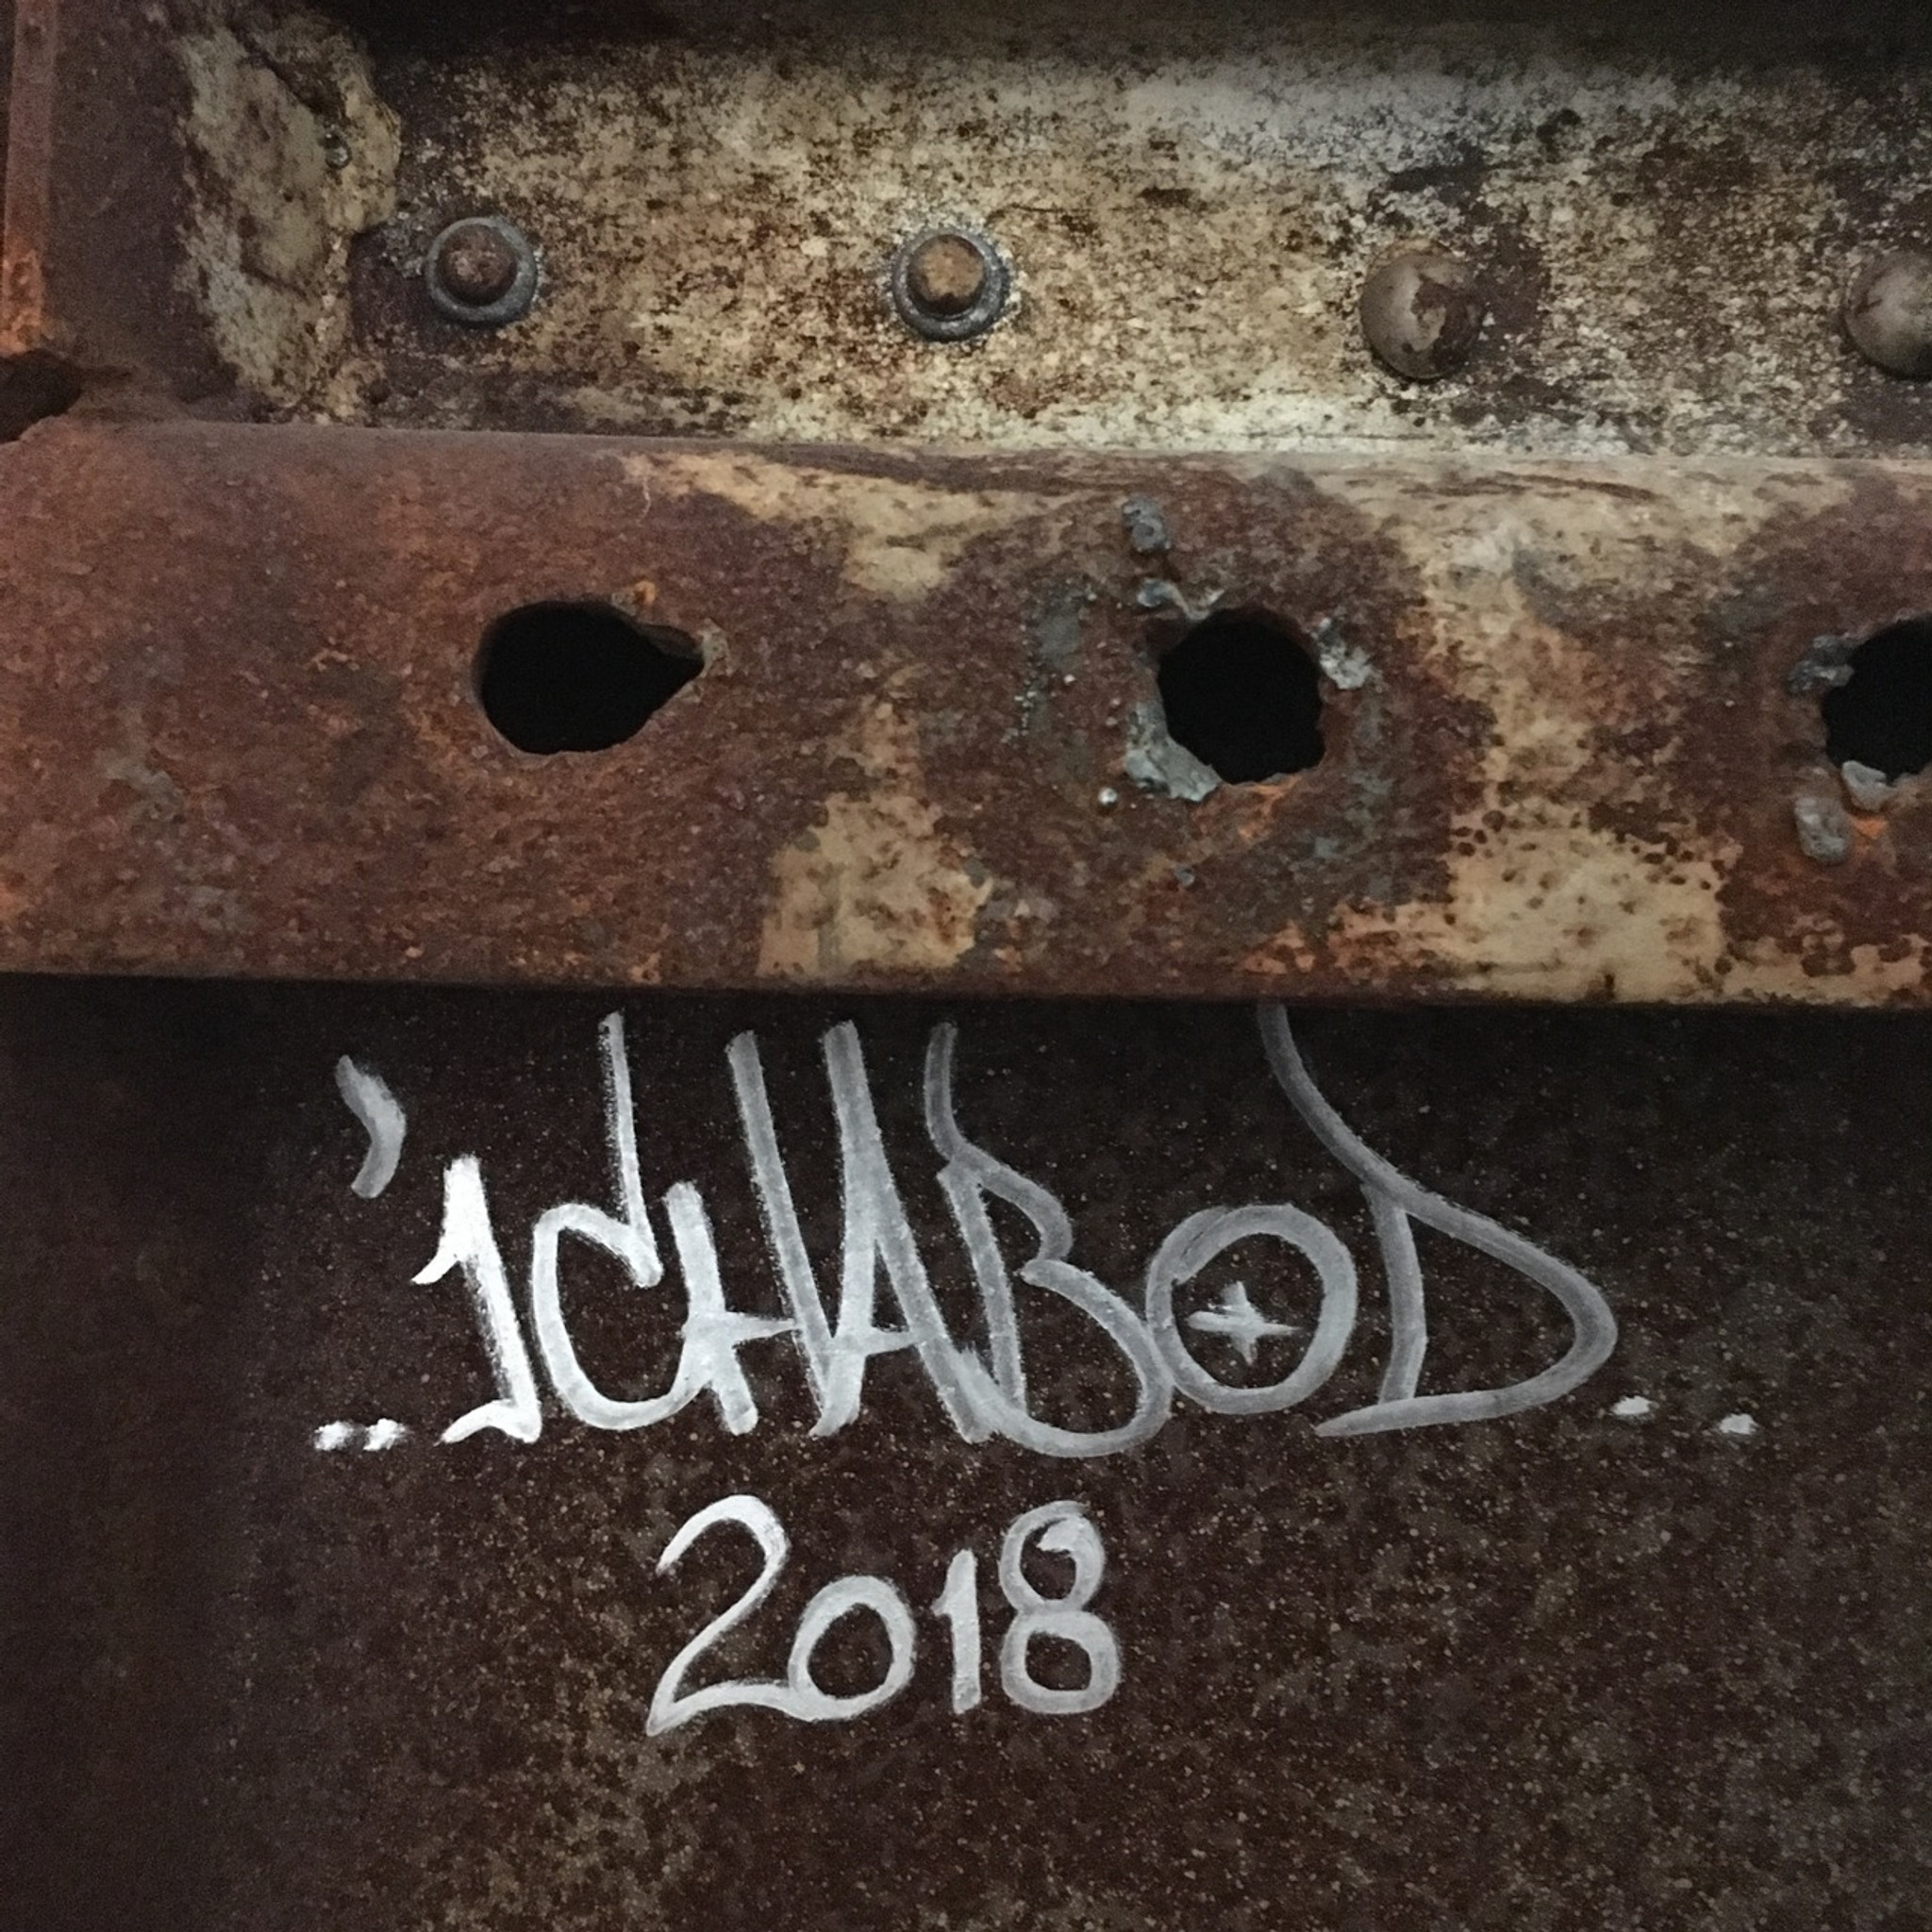 ICHABOD handstyle signature on  rusted steel